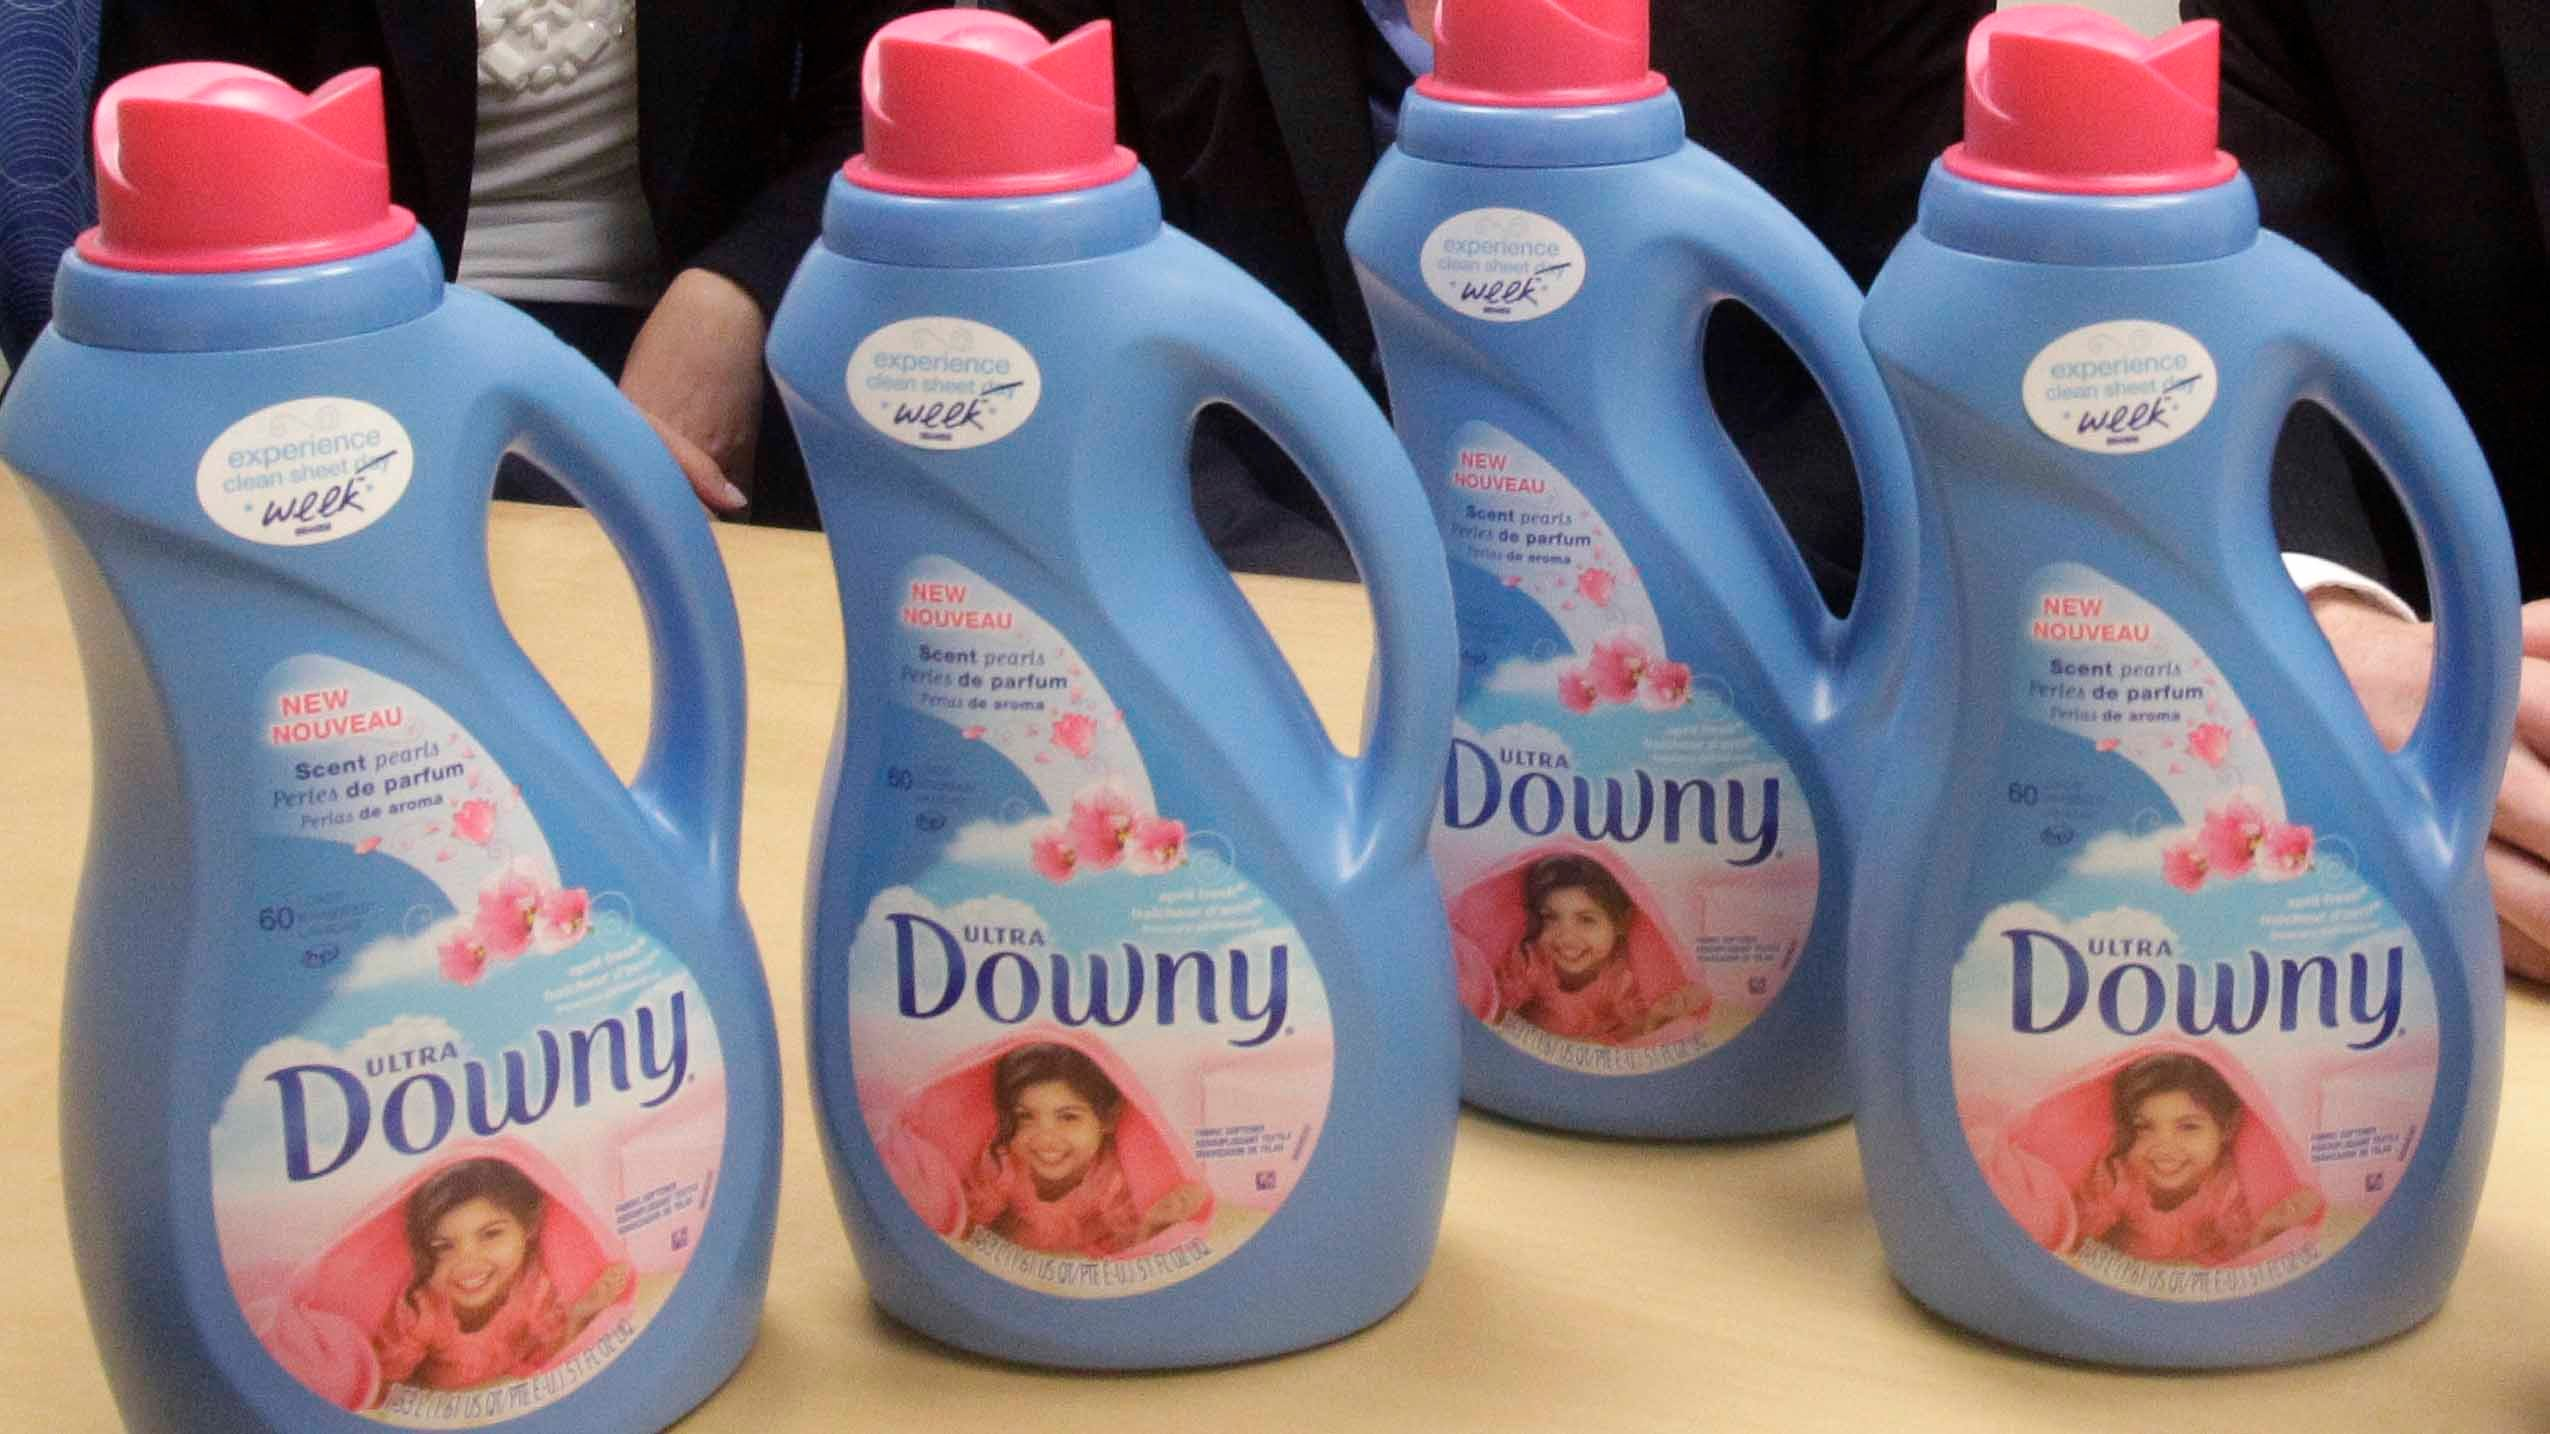 Downy fabric softener. Credit: AP images